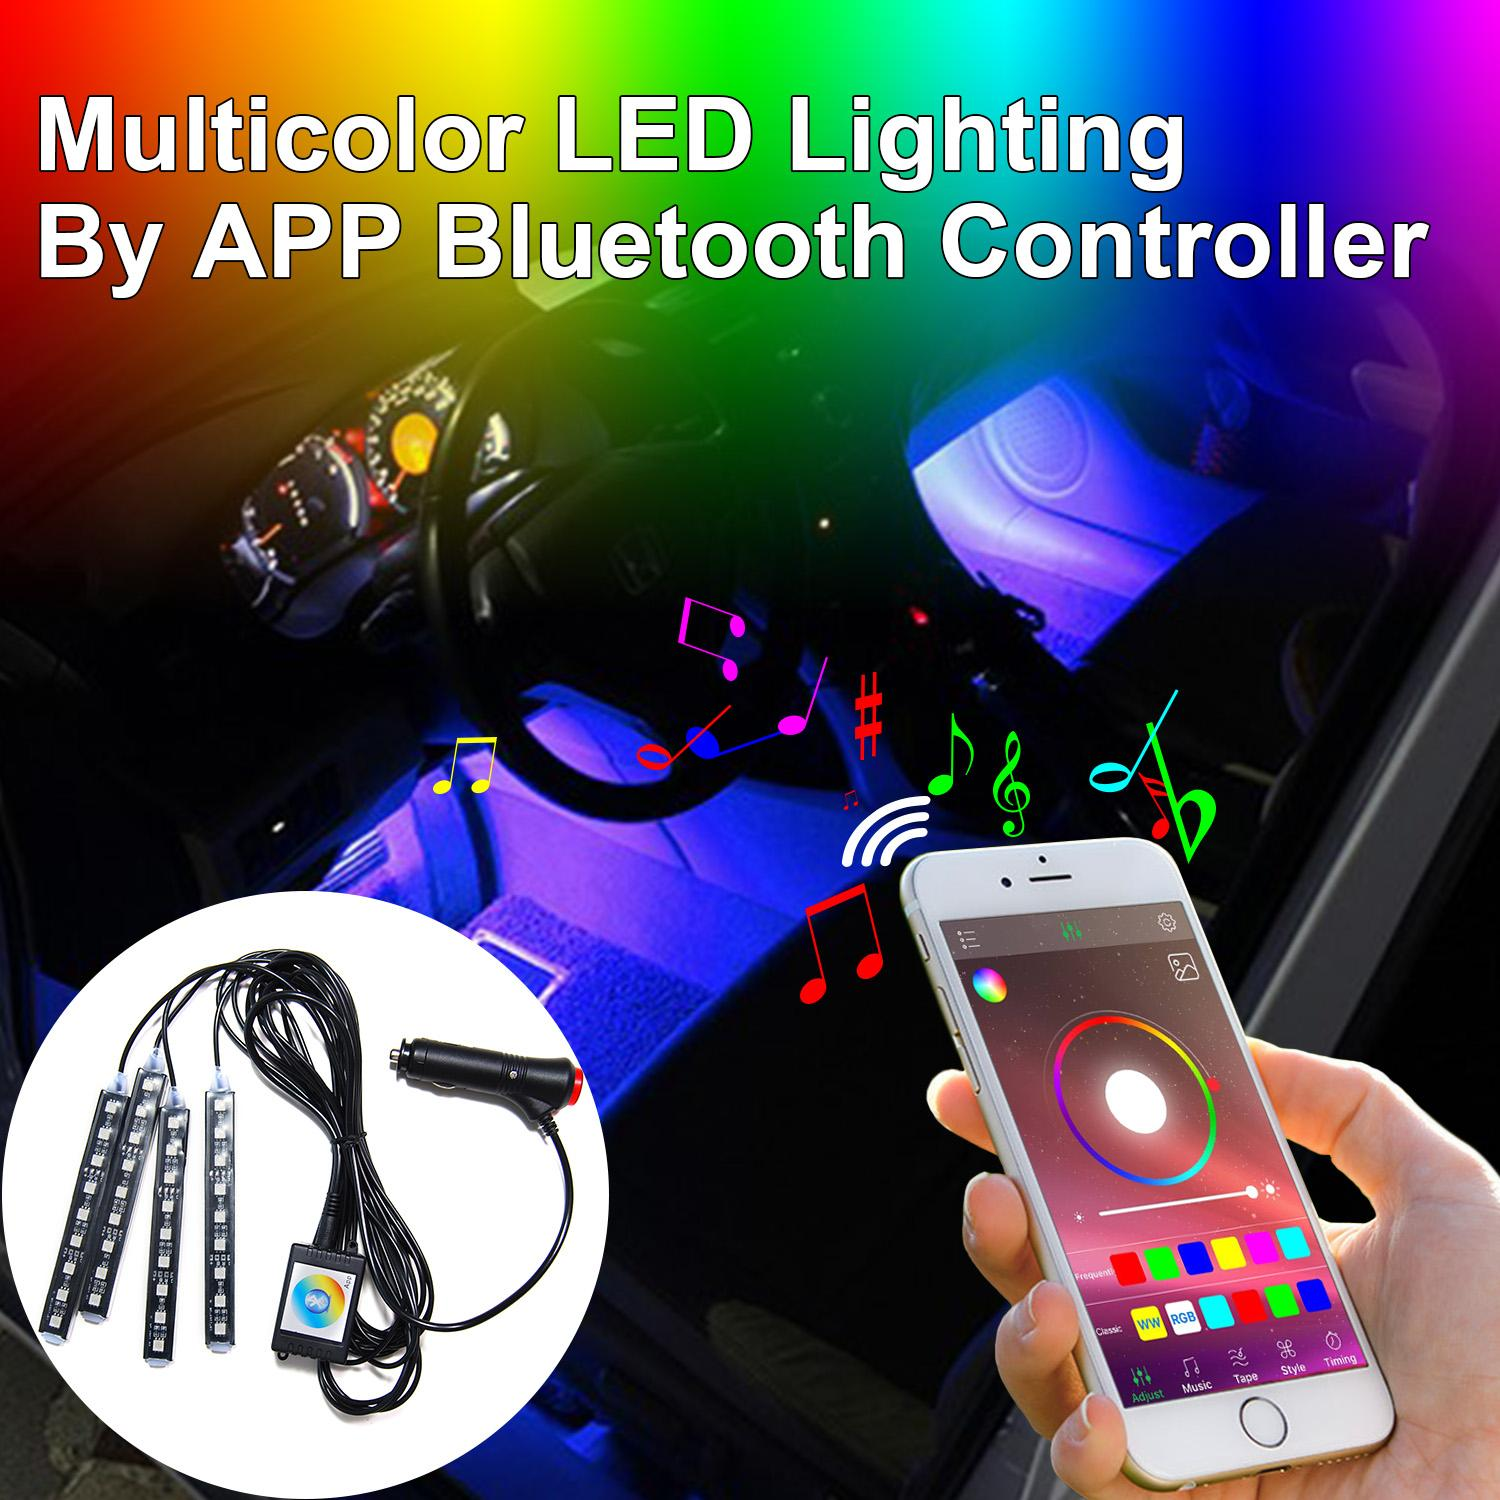 2018 addmotor led strip lights 48 multicolor rgb car interior lights 2018 addmotor led strip lights 48 multicolor rgb car interior lights neon led light bluetooth smartphone app controller from addmotornumber mozeypictures Images